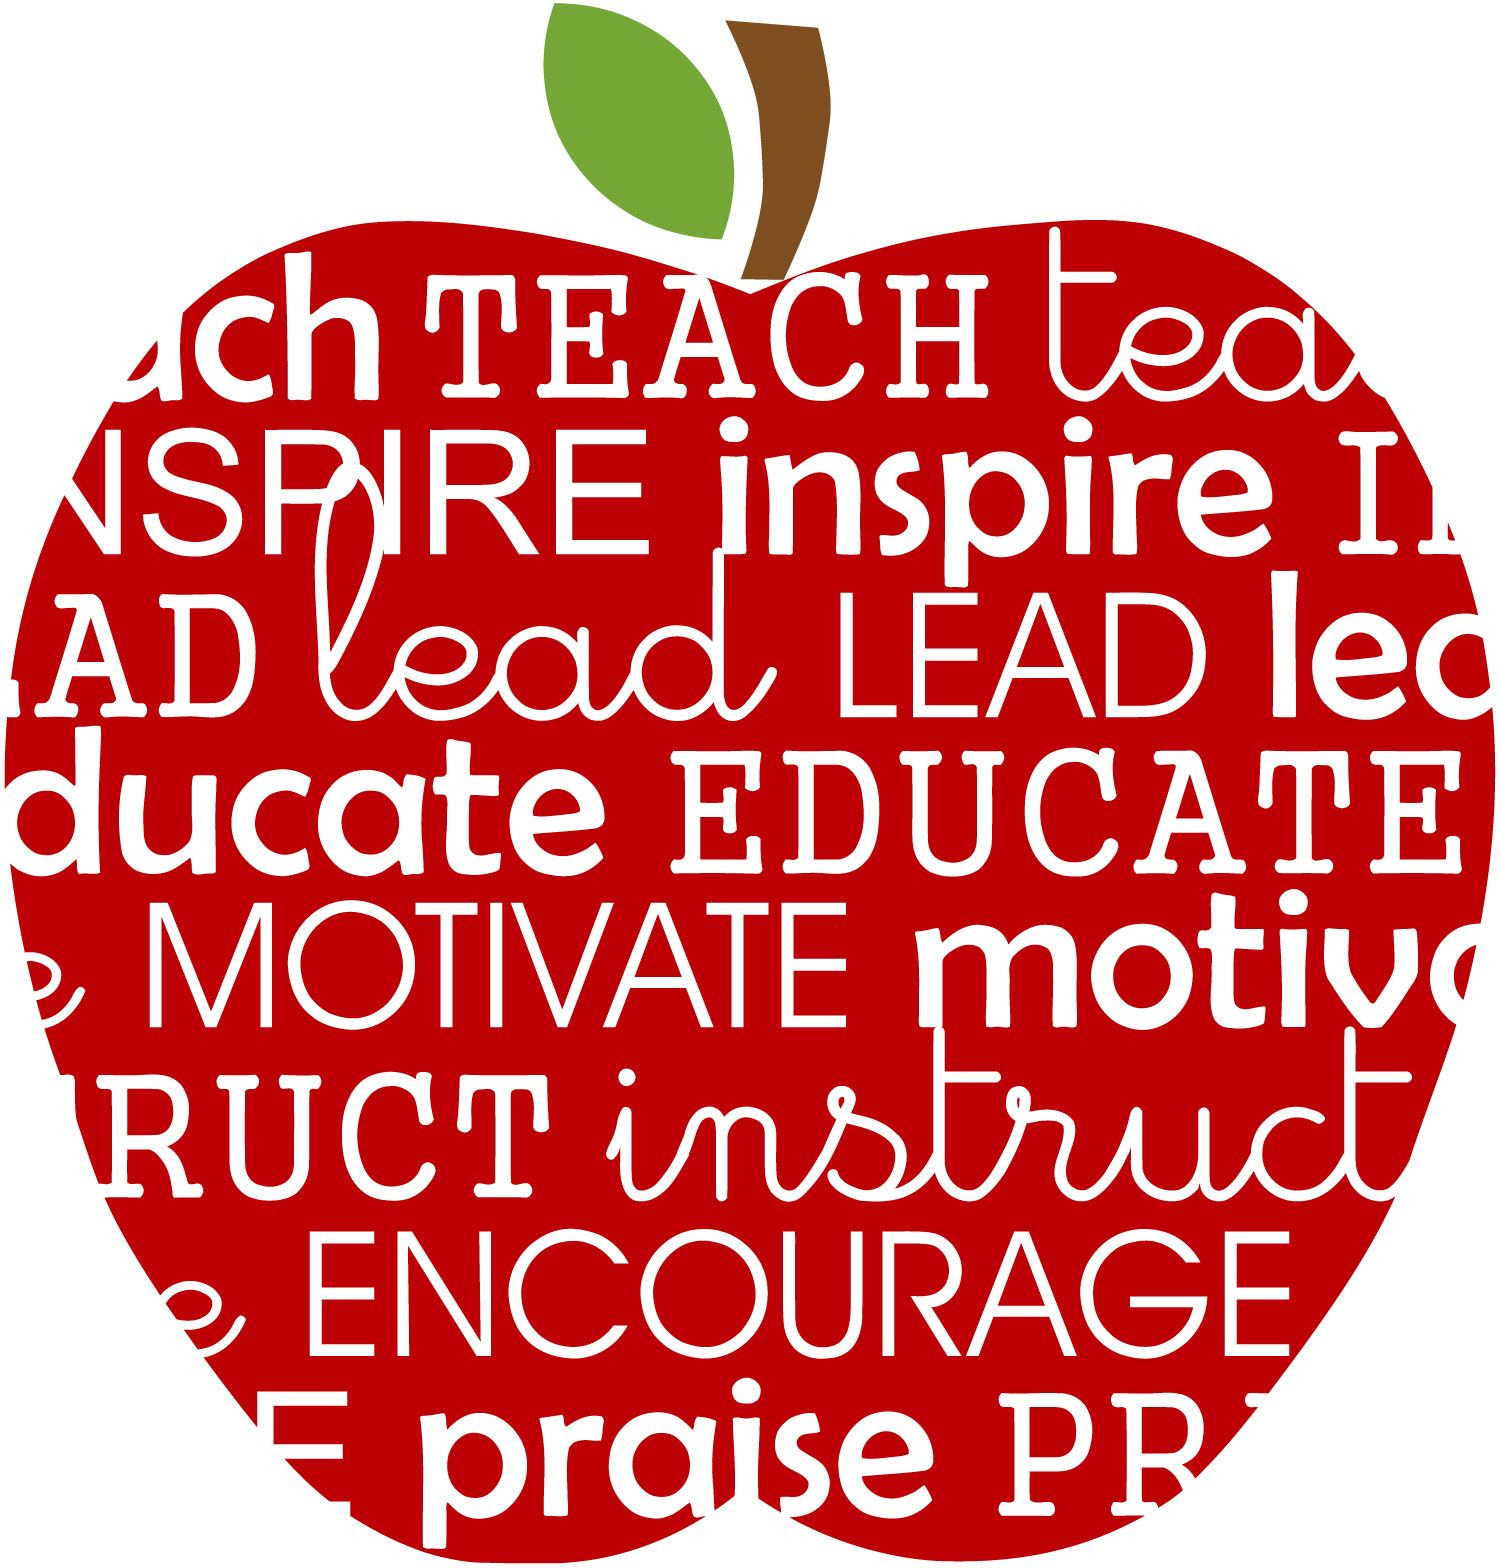 Pin by Apple Diaz on Teachers cards and gifts   Teacher ... (1500 x 1568 Pixel)